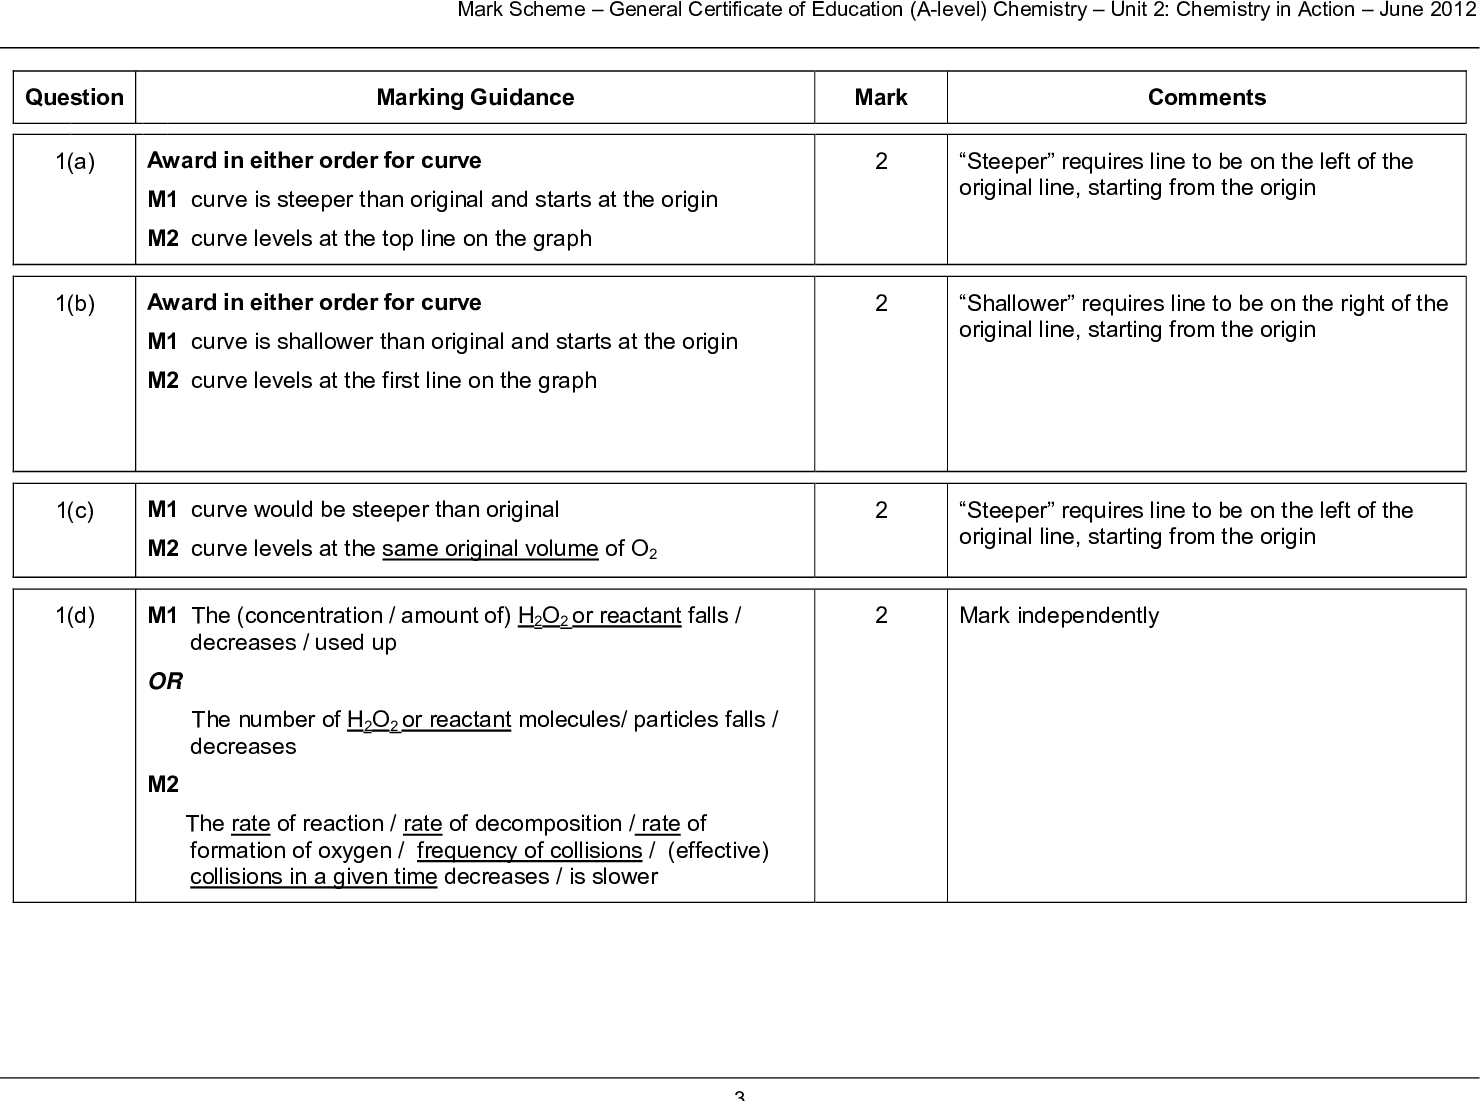 mark scheme general certificate of education a level chemistry unit chemistry in action june question marking guidance mark comments steeper requires line to be on the left of the original line starting from the origin shallower requires line to be on the right of the original line starting from the origin steeper requires line to be on the left of the original line starting from the origin mark independently a b award in either order for curve m curve is steeper than original and starts at the origin m curve levels at the top line on the graph award in either order for curve m curve is shallower than original and starts at the origin m curve levels at the first line on the graph c d m curve would be steeper than original m curve levels at the same original volume of o m the concentration amount of h o or reactant falls or the number of h o or reactant molecules particles falls decreases used up decreases m the rate of reaction rate of decomposition rate of formation of oxygen frequency of collisions effective collisions in a given time decreases is slower mark scheme general certificate of education a level chemistry unit chemistry in action june e i h o h o o e ii hydrogen bromide it does not appear in the overall equation or hydrogen bromide it is not used up in the reaction unchanged at the end of the reaction or hydrogen bromide it is regenerated re formed in step ignore state symbols accept only this equation or its multiples extra species must be crossed through